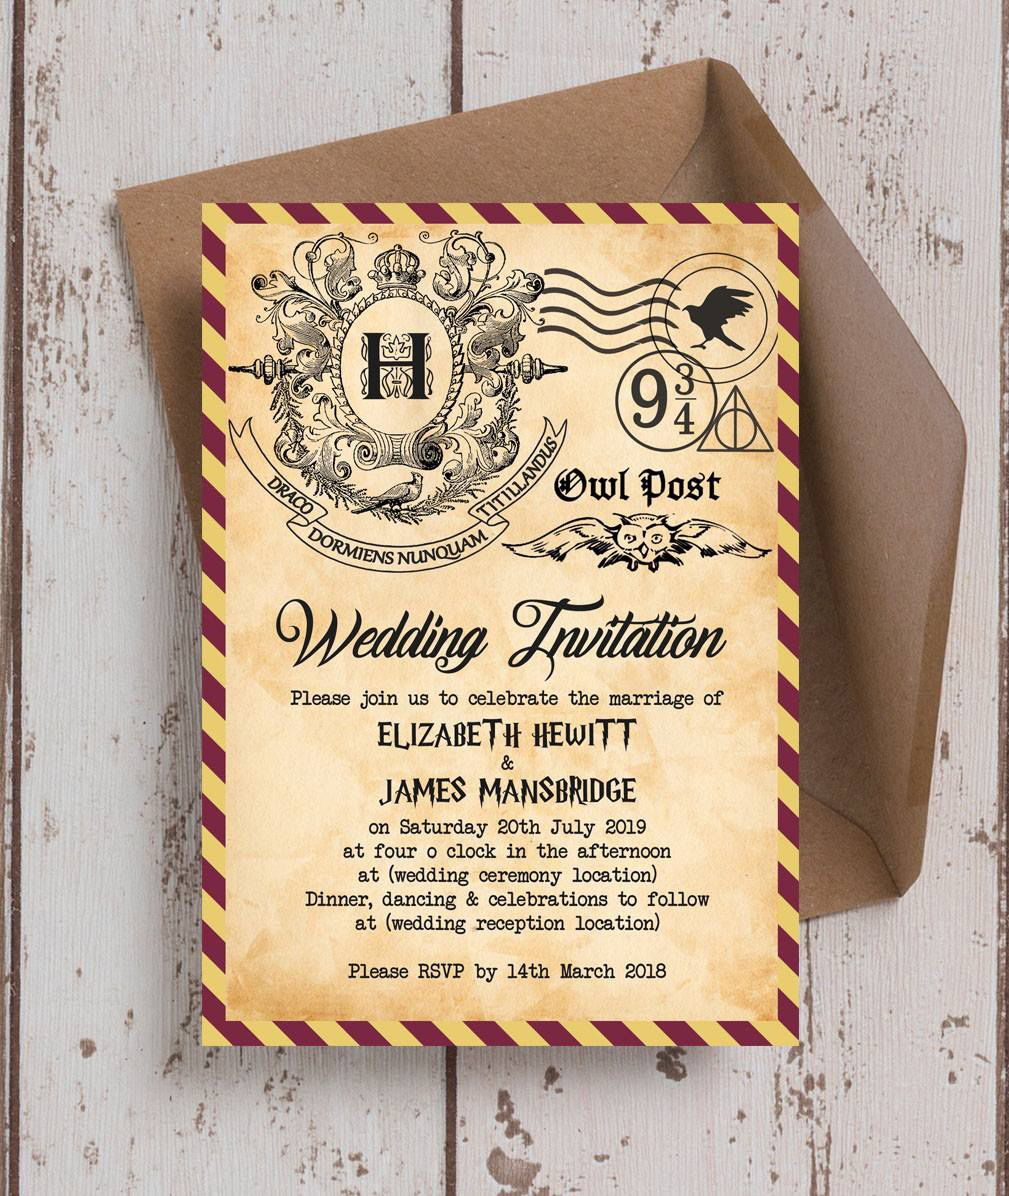 Amazing Harry Potter themed wedding invites. Our invitations are